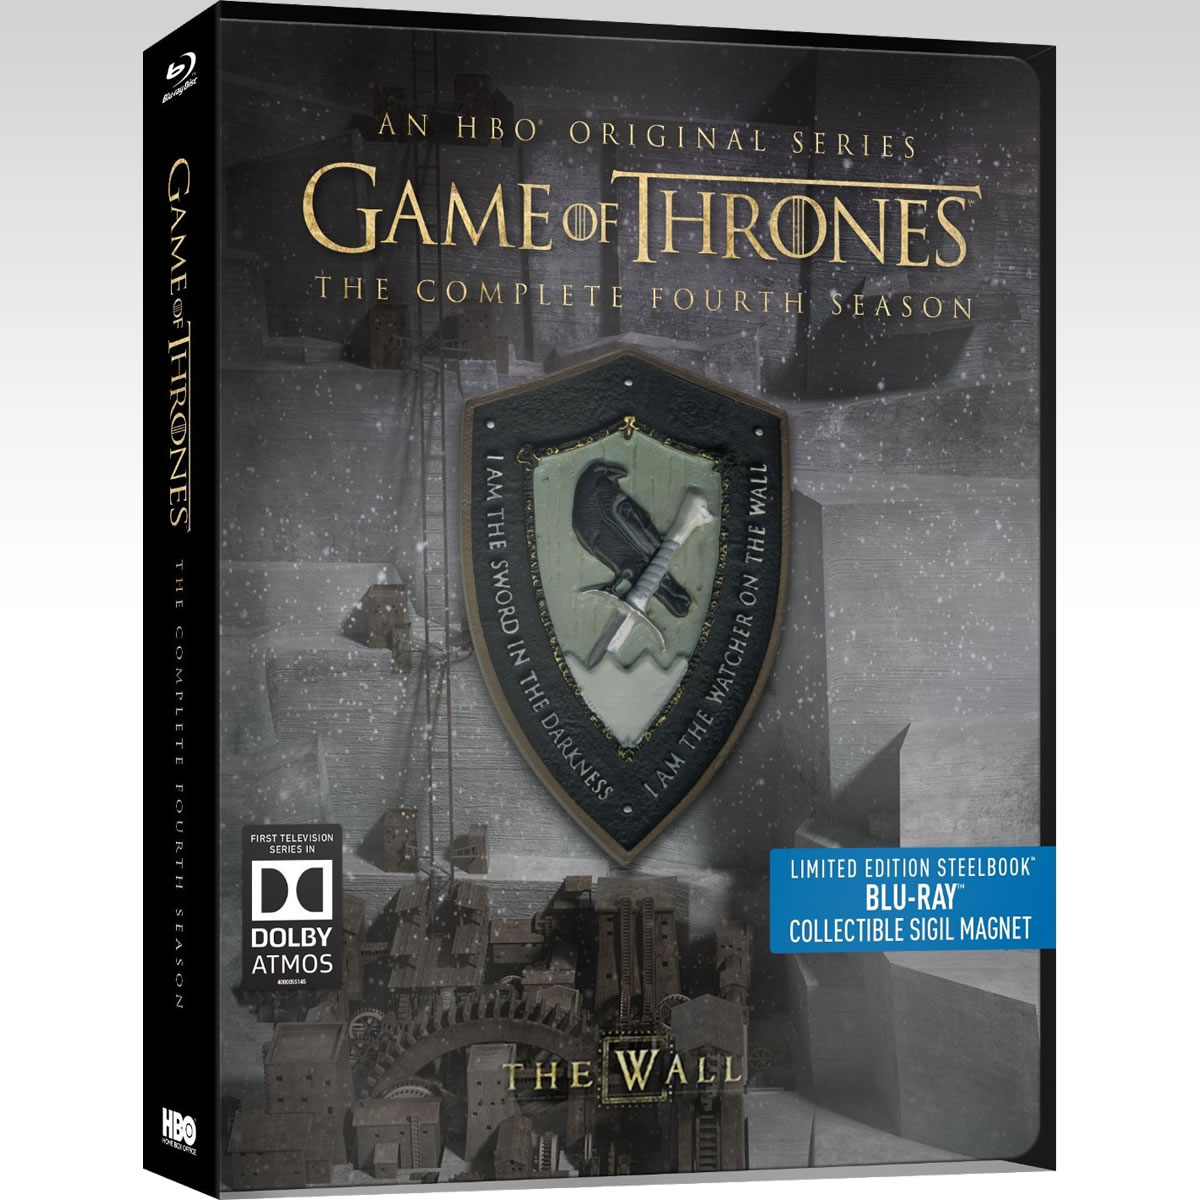 GAME OF THRONES: THE COMPLETE 4th SEASON - Limited Edition Steelbook [��������� �� ���������� ����������] (BLU-RAY)